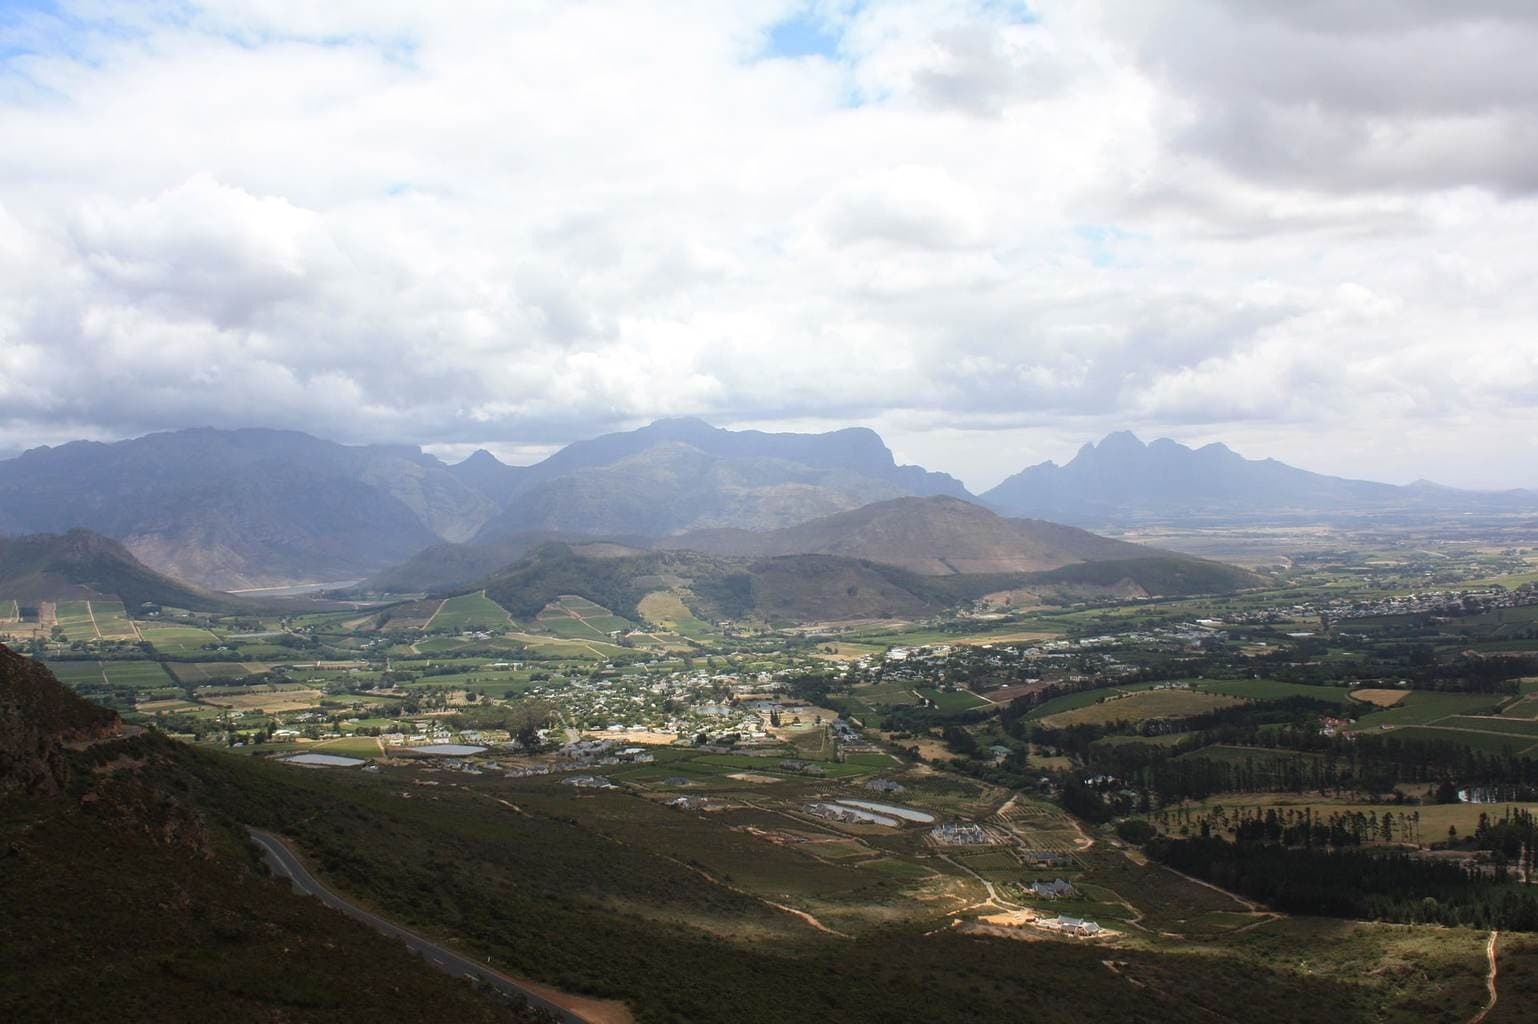 The Franschoek wine valley